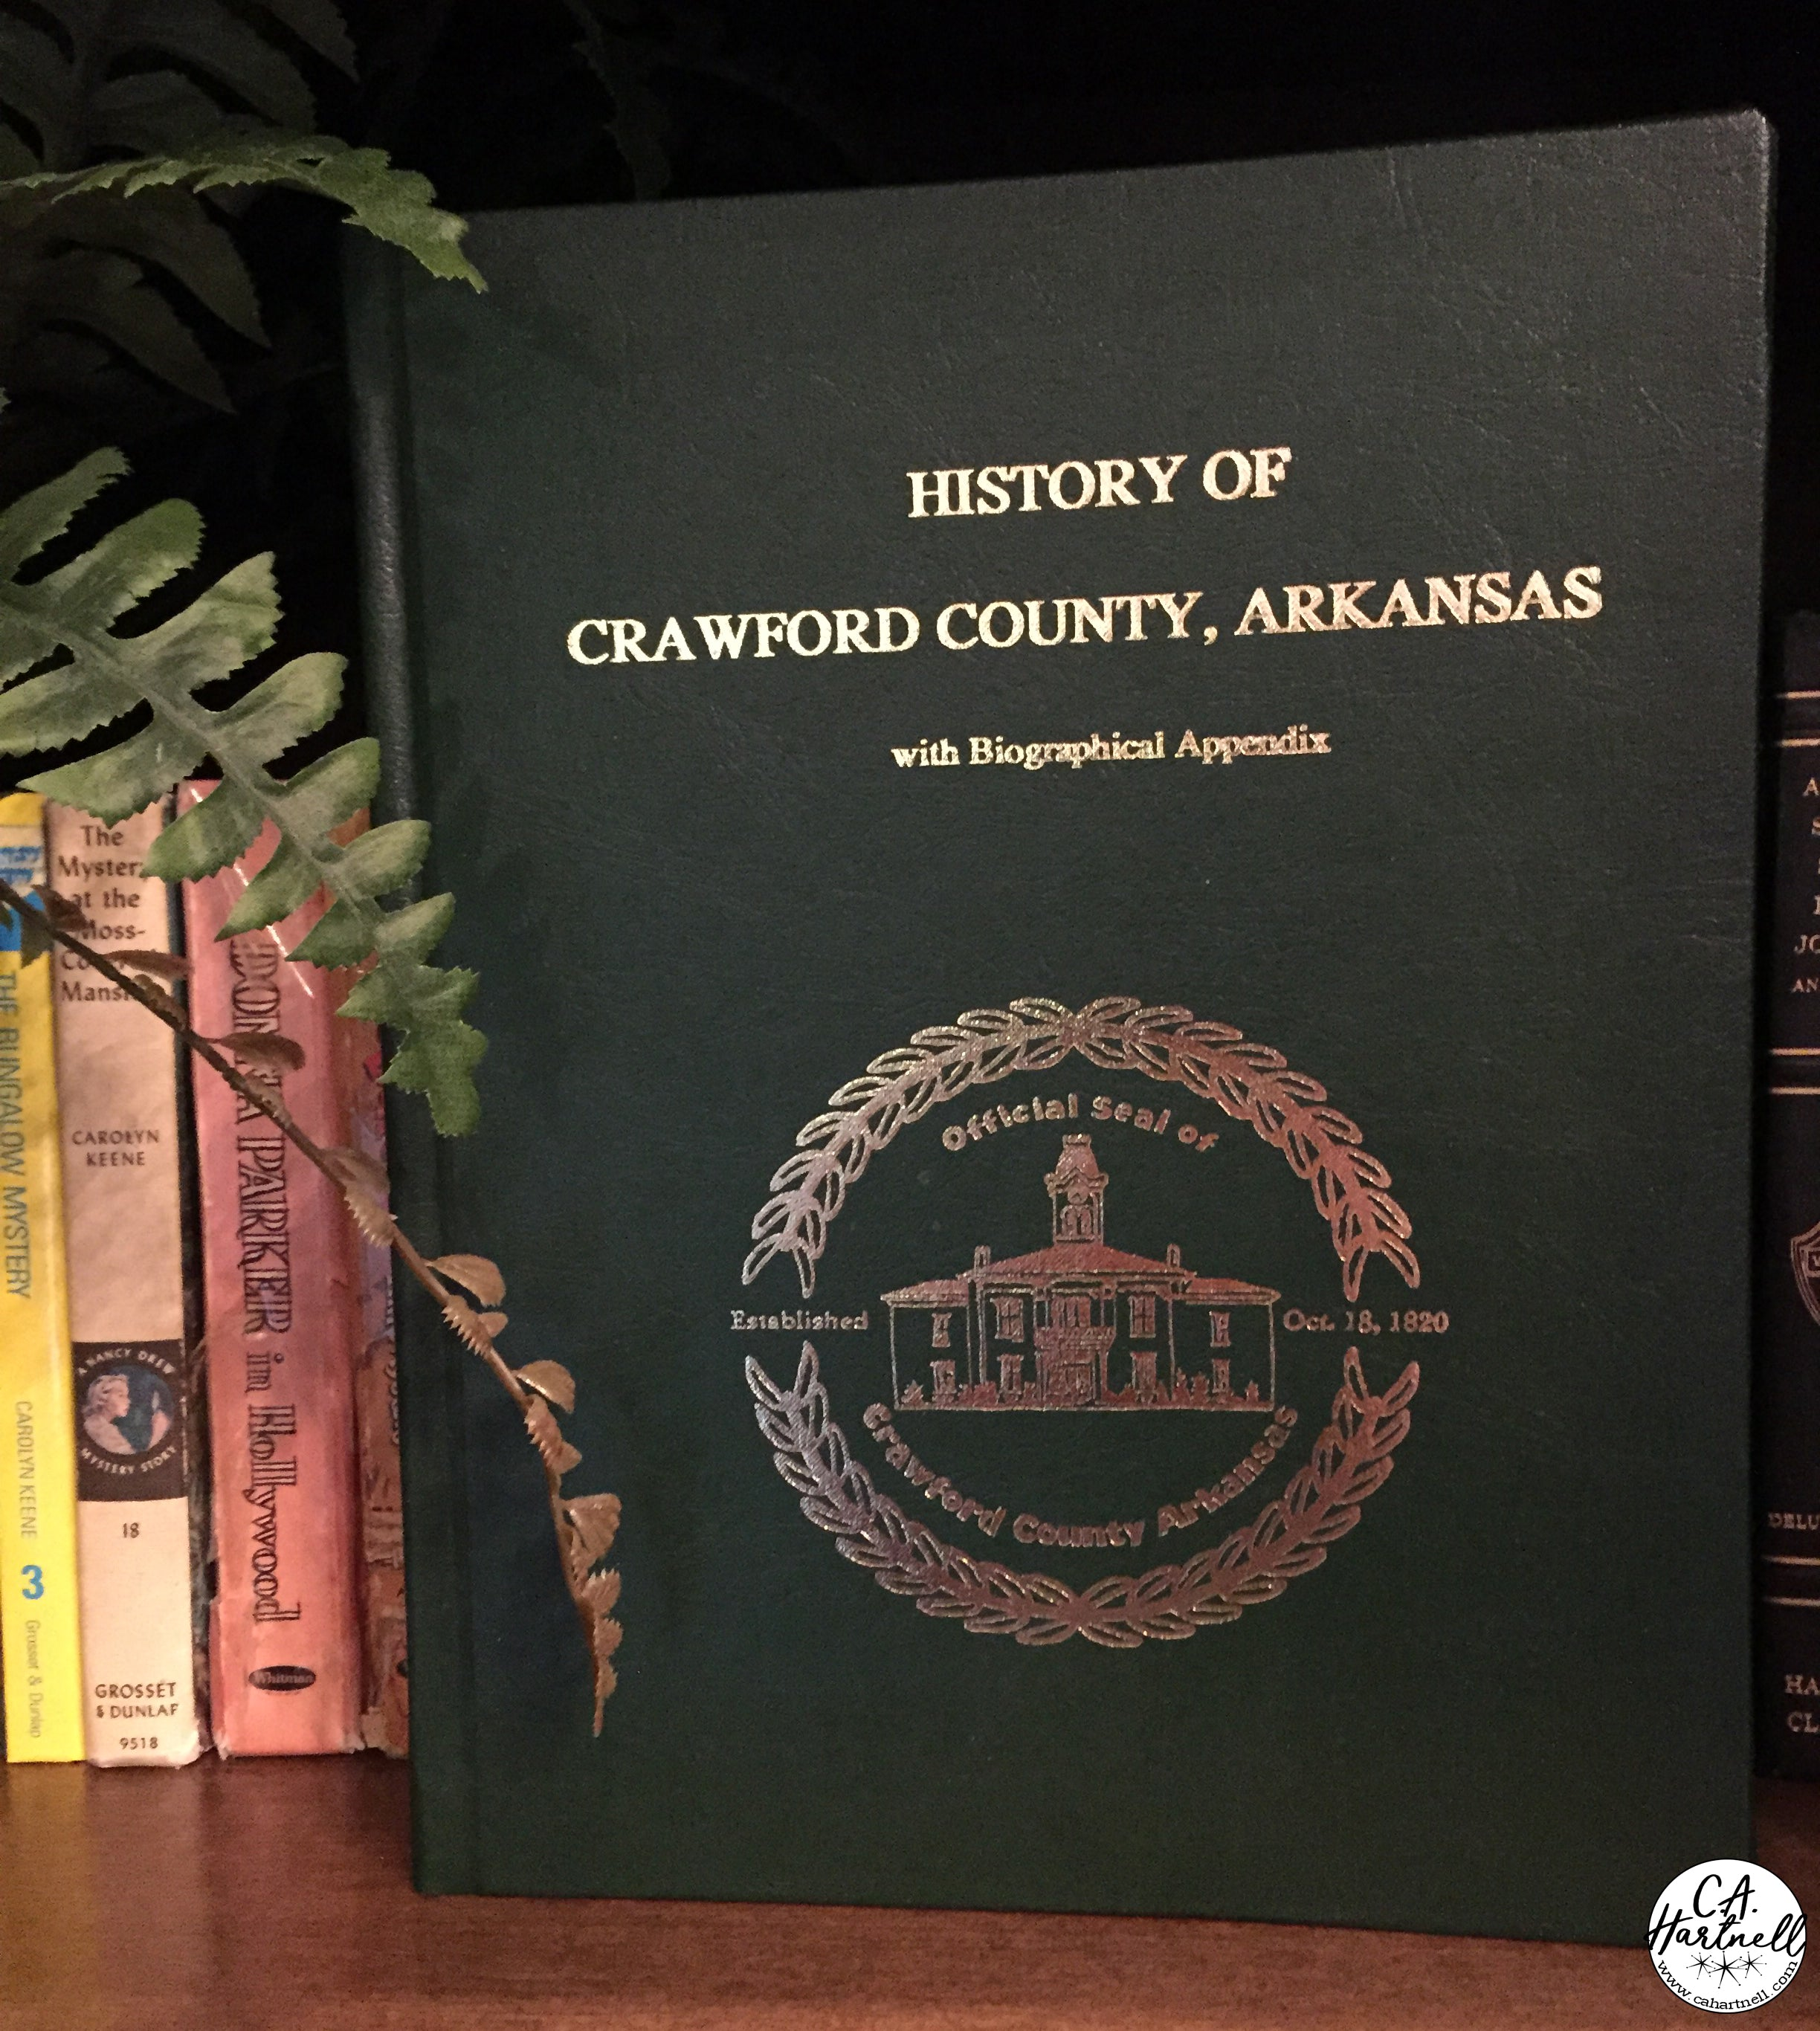 History of Crawford County Arkansas - C.A. Hartnell